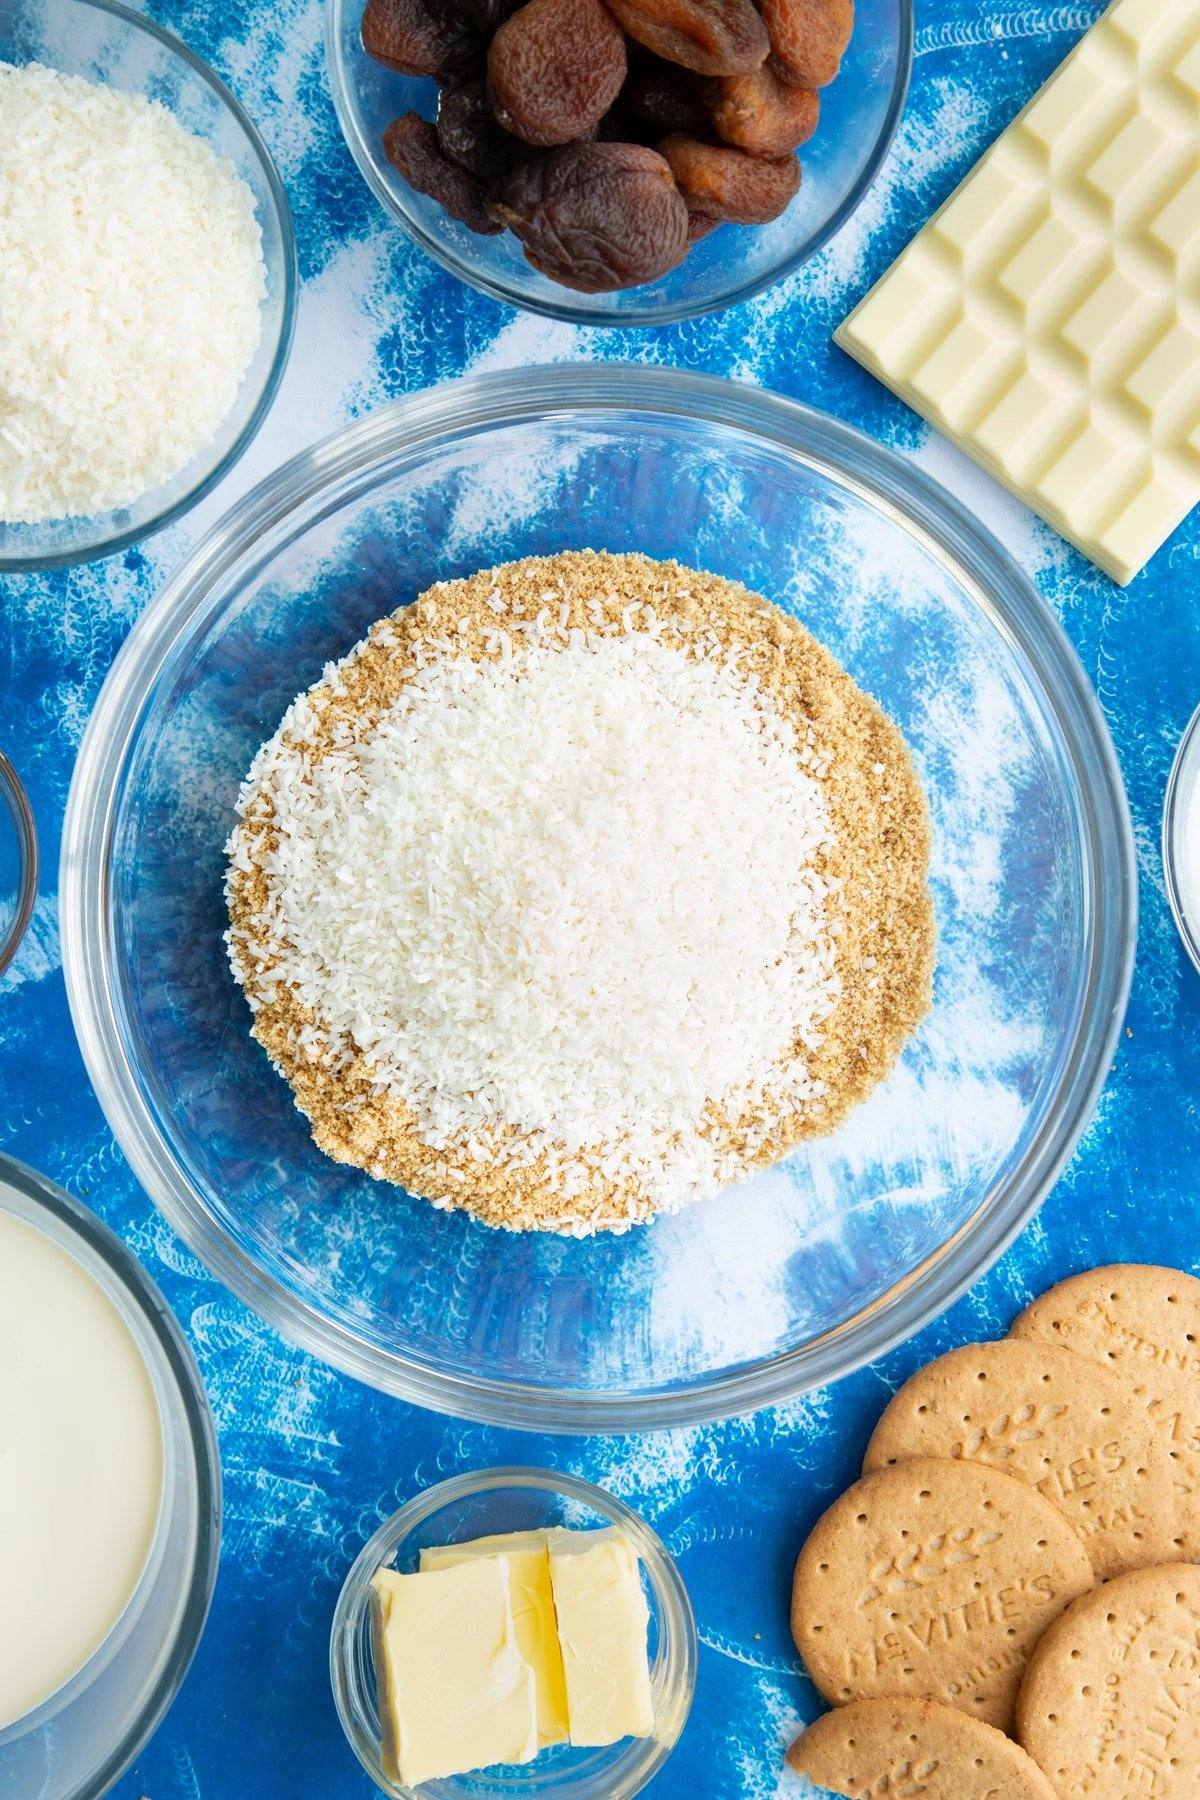 Crushed biscuits and desiccated coconut in a bowl. Ingredients to make an apricot cheesecake surround the bowl.